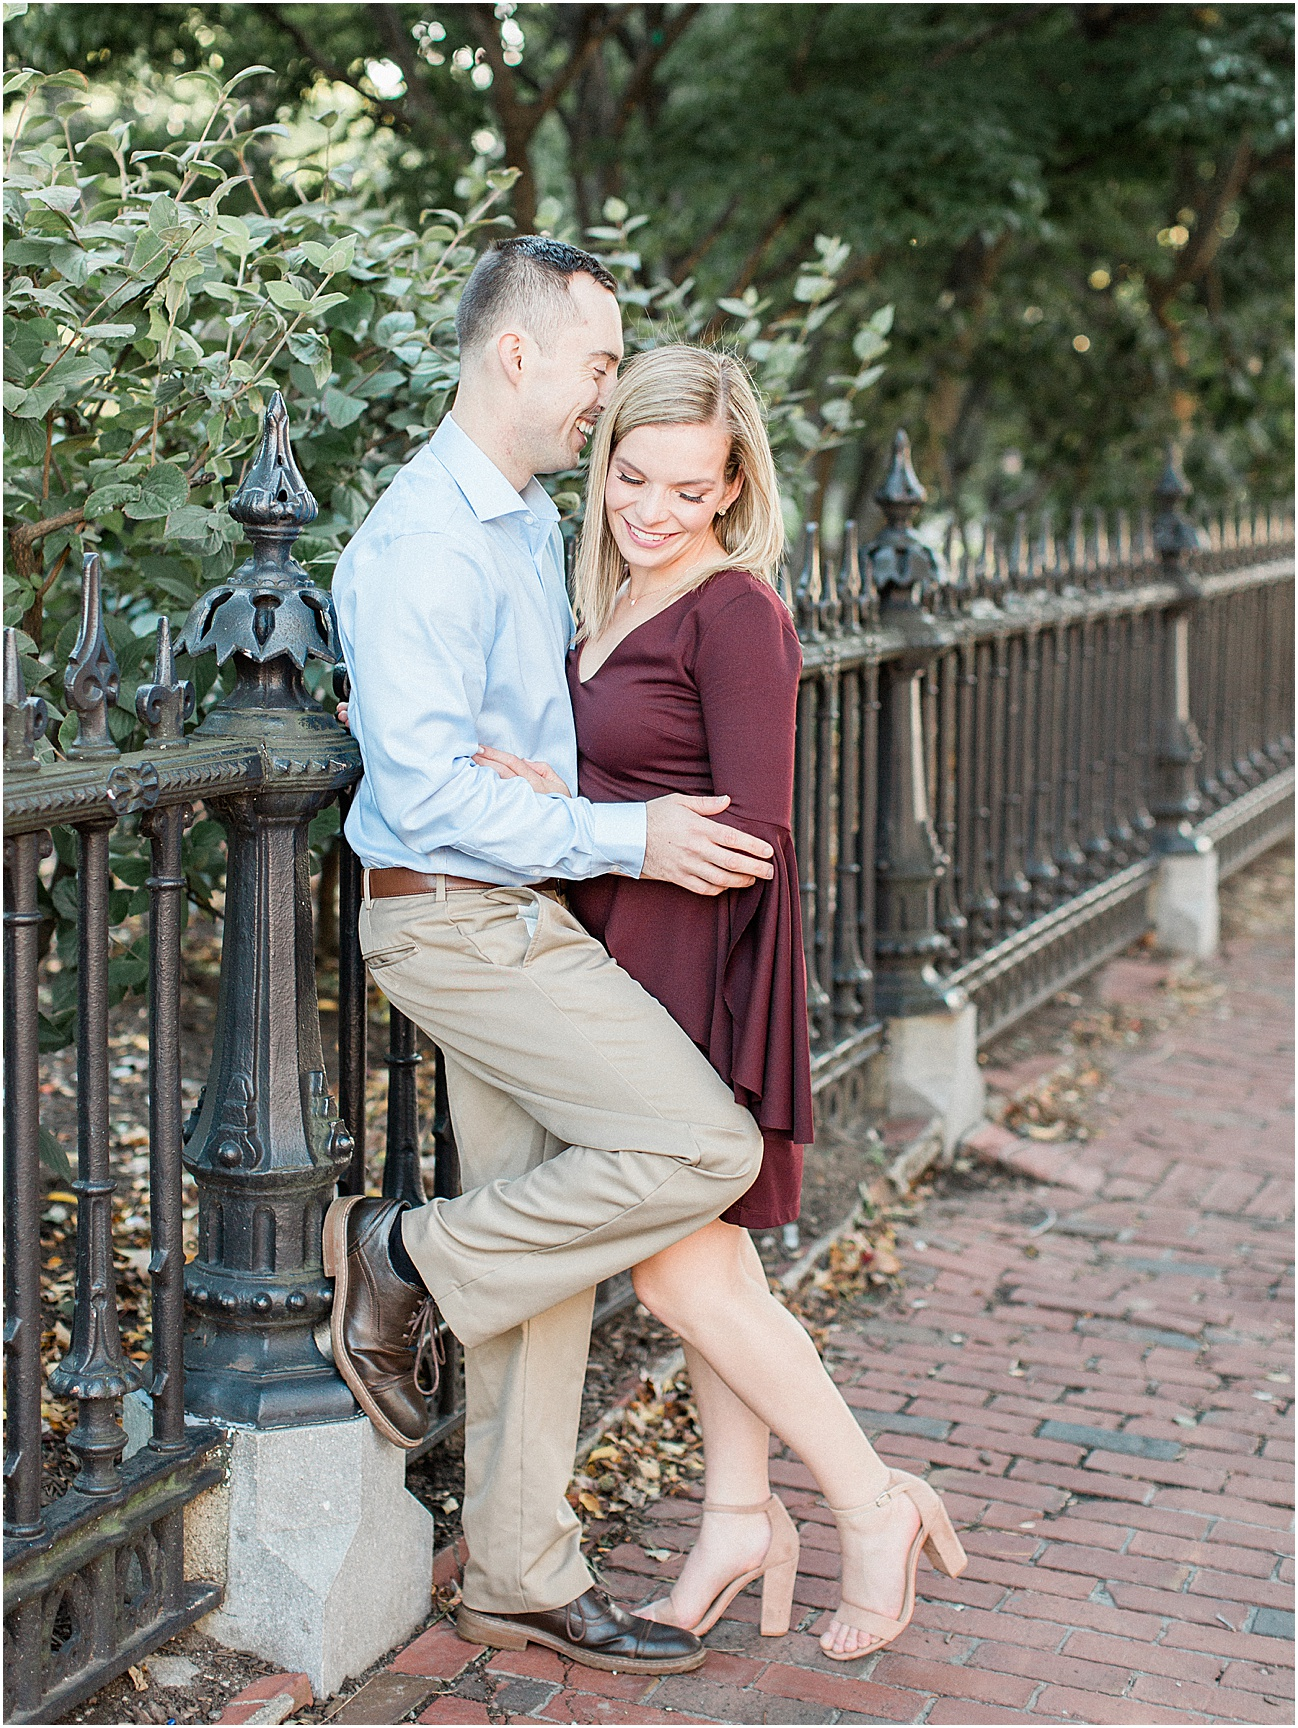 jenny_jared_beacon_hill_acorn_street_seaport_engagement_fall_cape_cod_boston_wedding_photographer_meredith_jane_photography_photo_1526.jpg